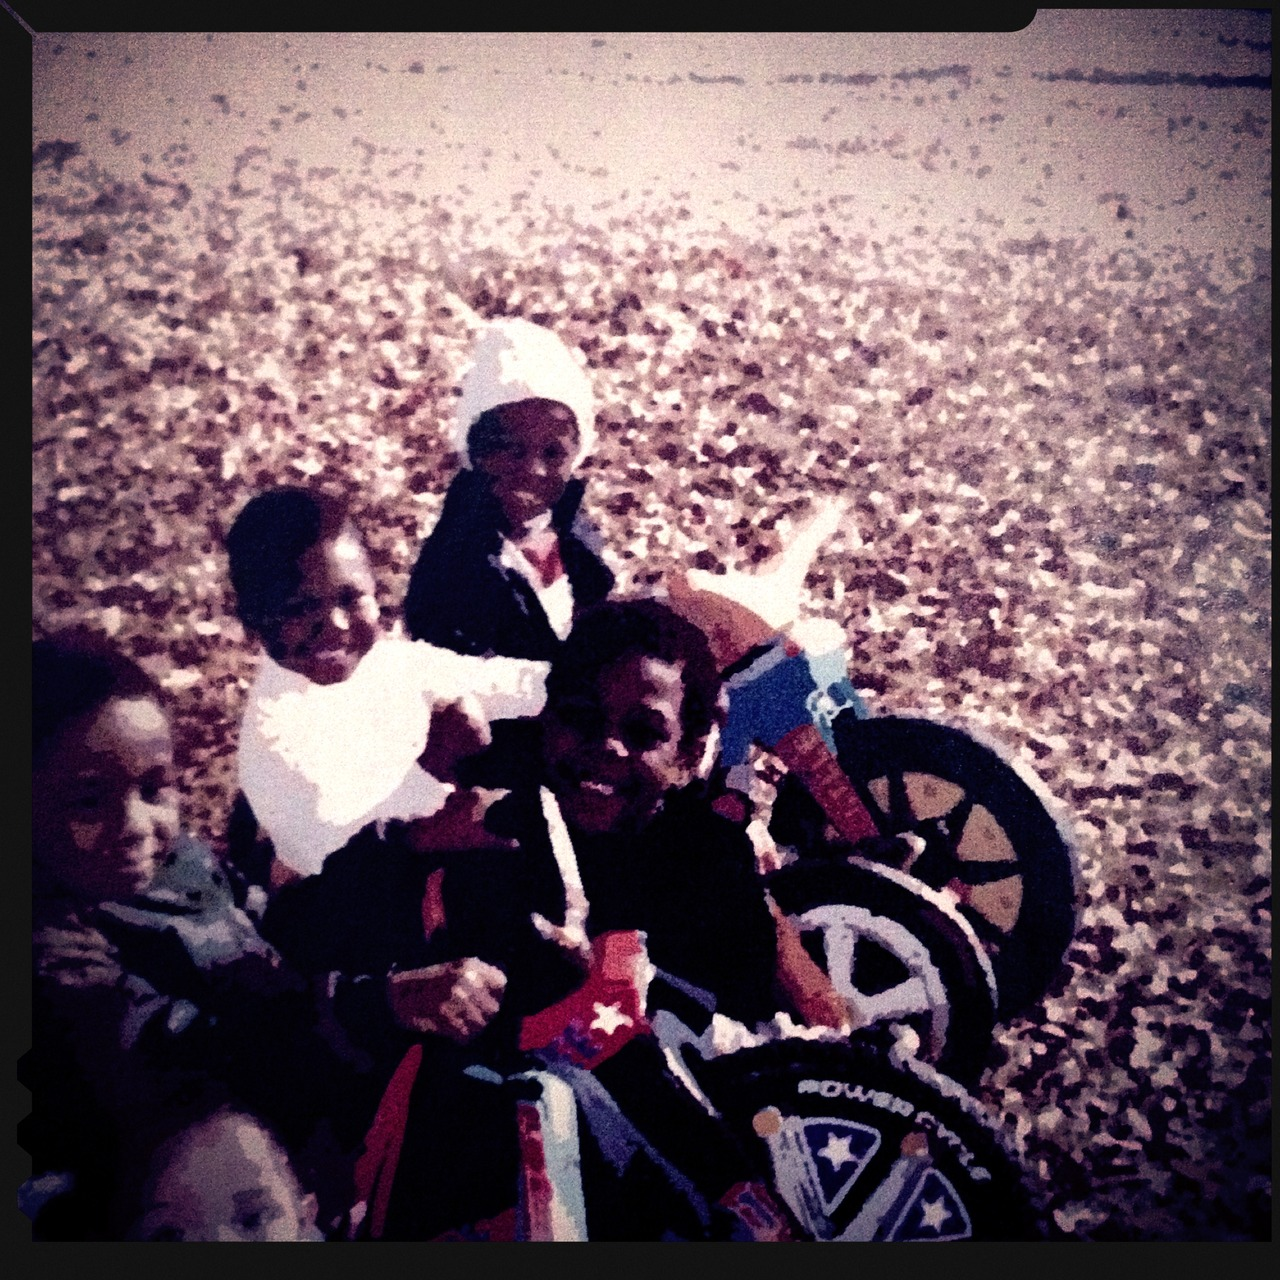 The Big Wheel Crew; Circa 1986 - #pepper #peppersearching #adrianfranks #fearless